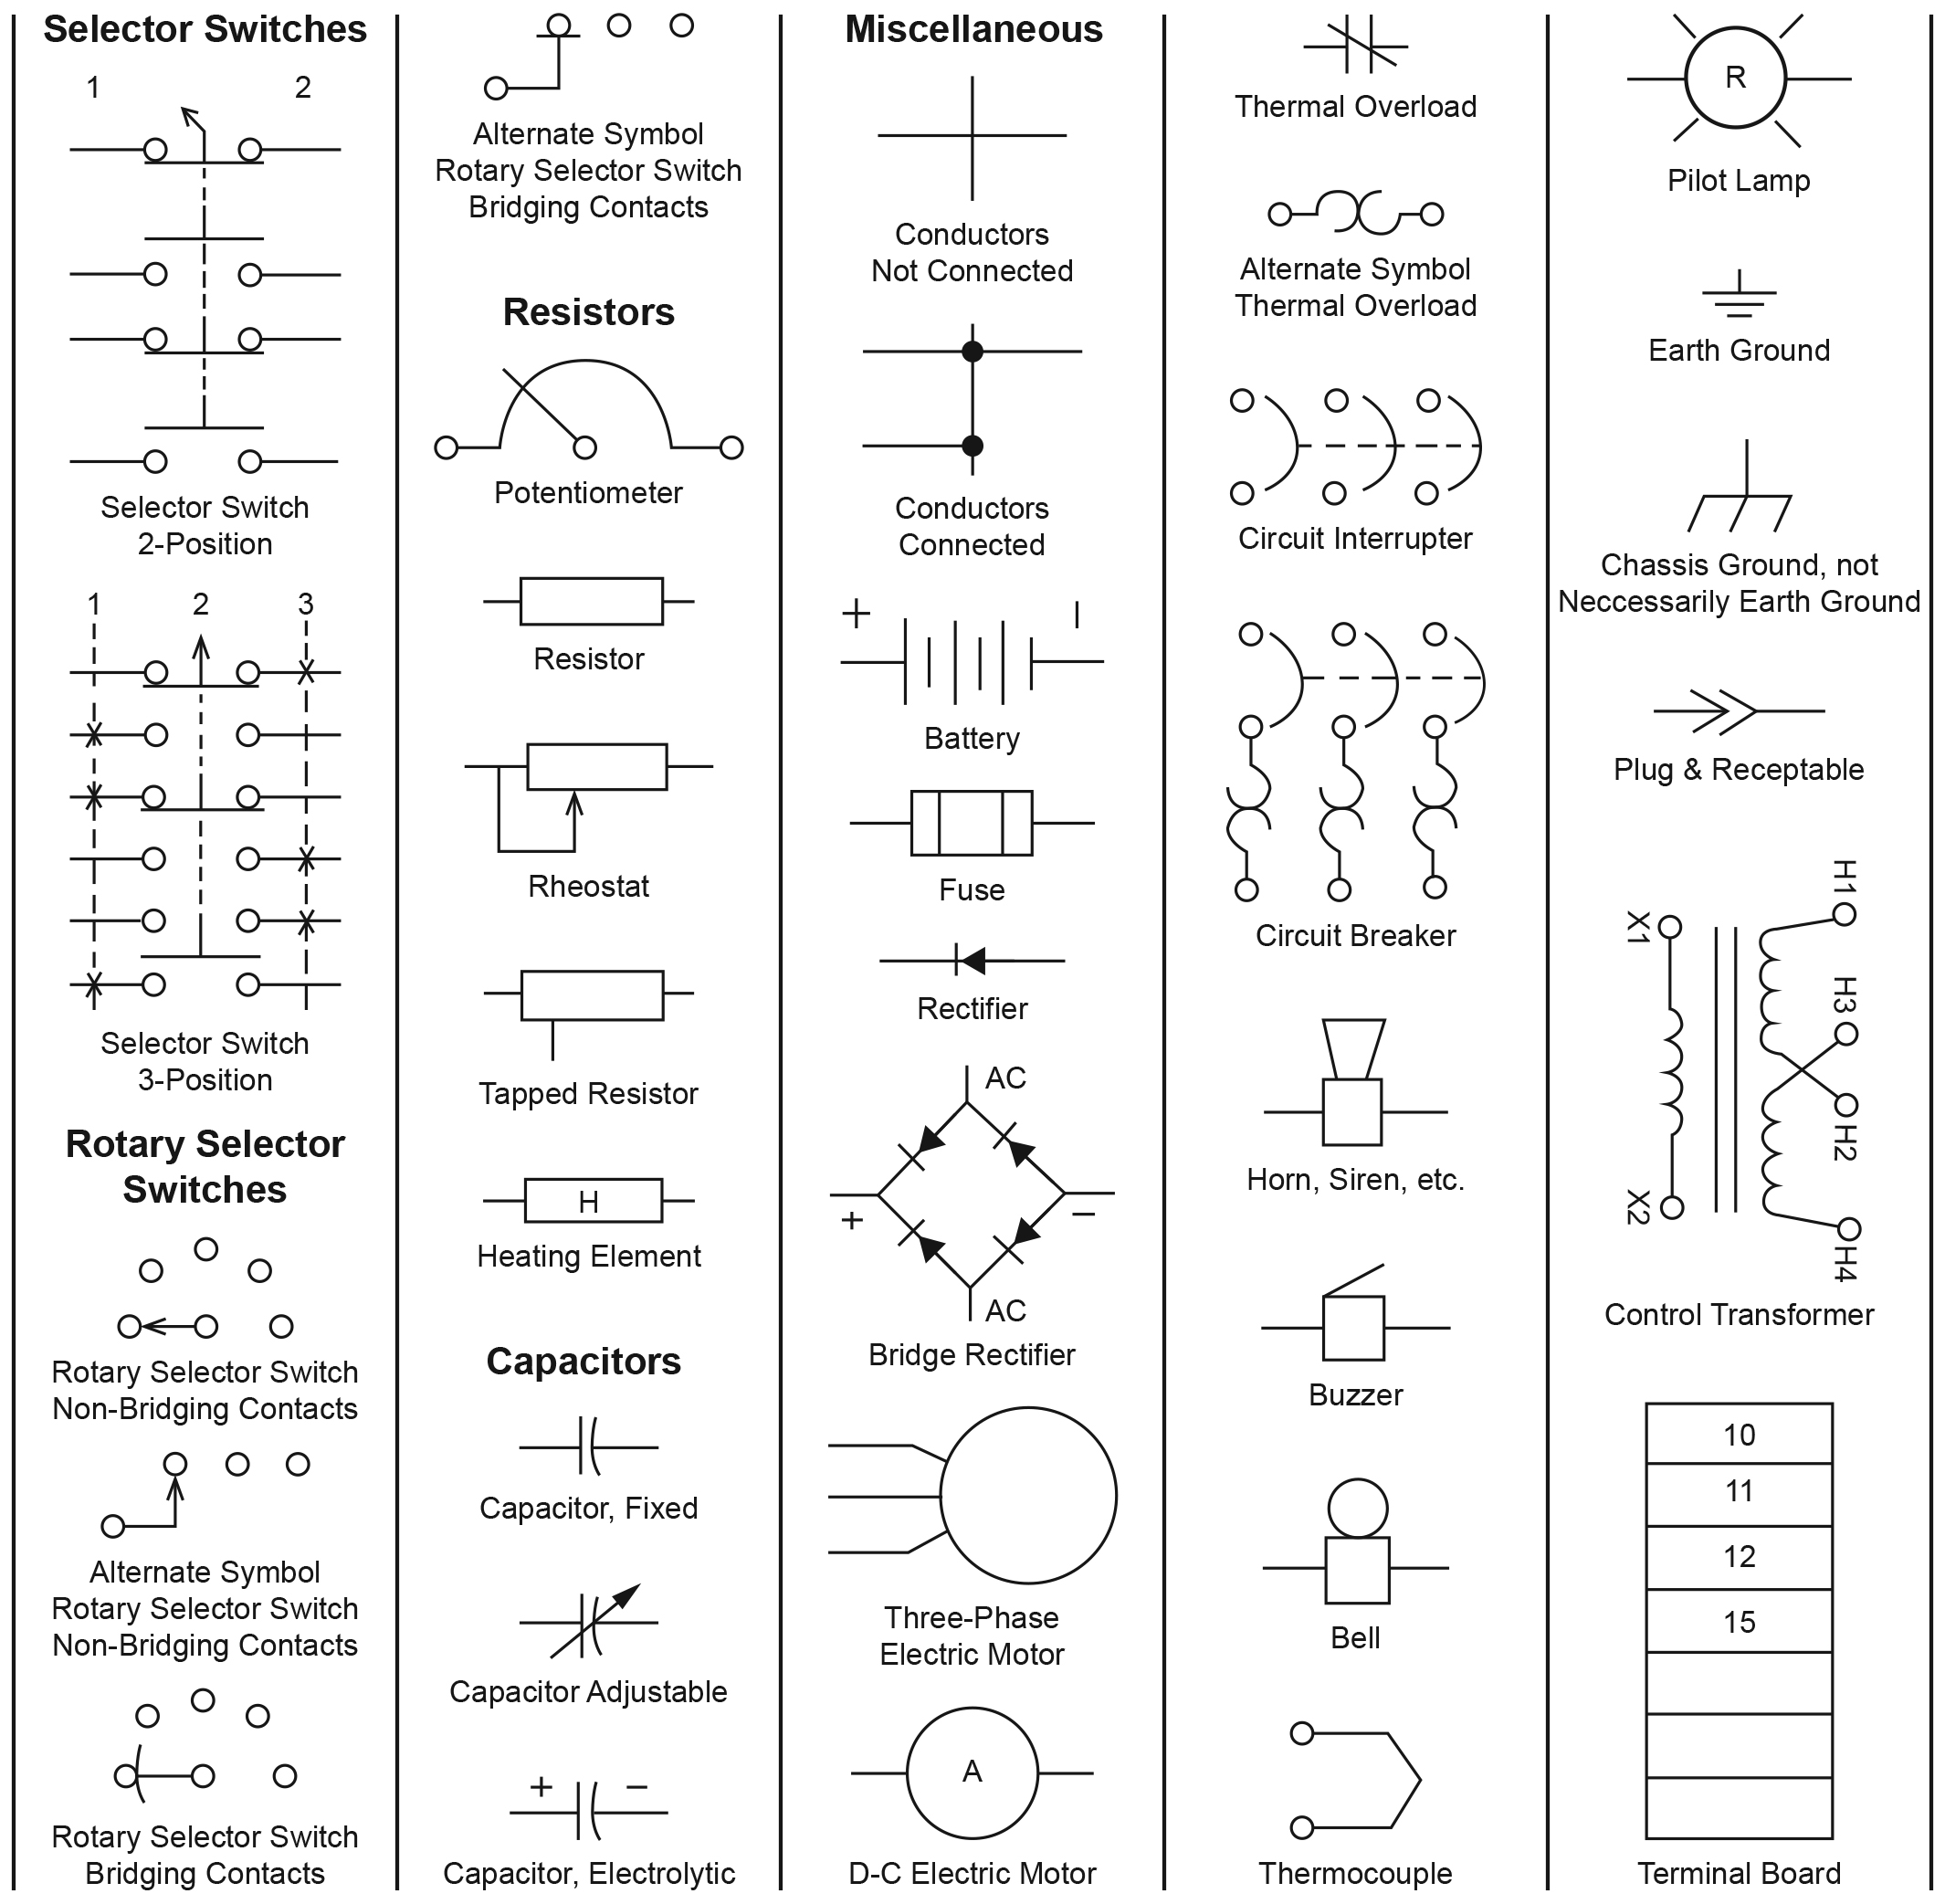 jic standard symbols for electrical ladder diagrams